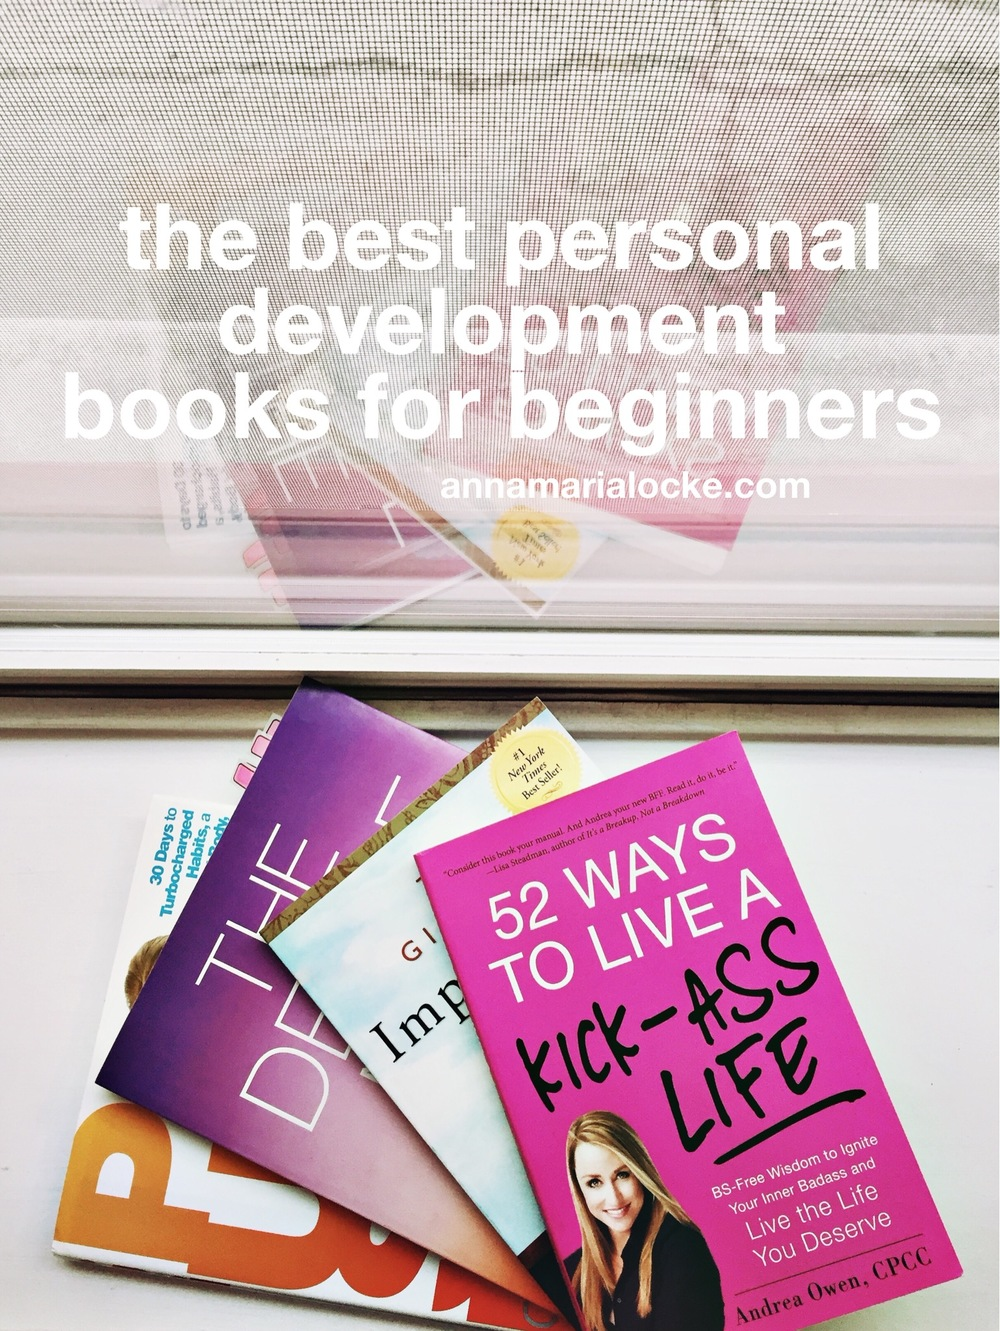 What book to read for personal development